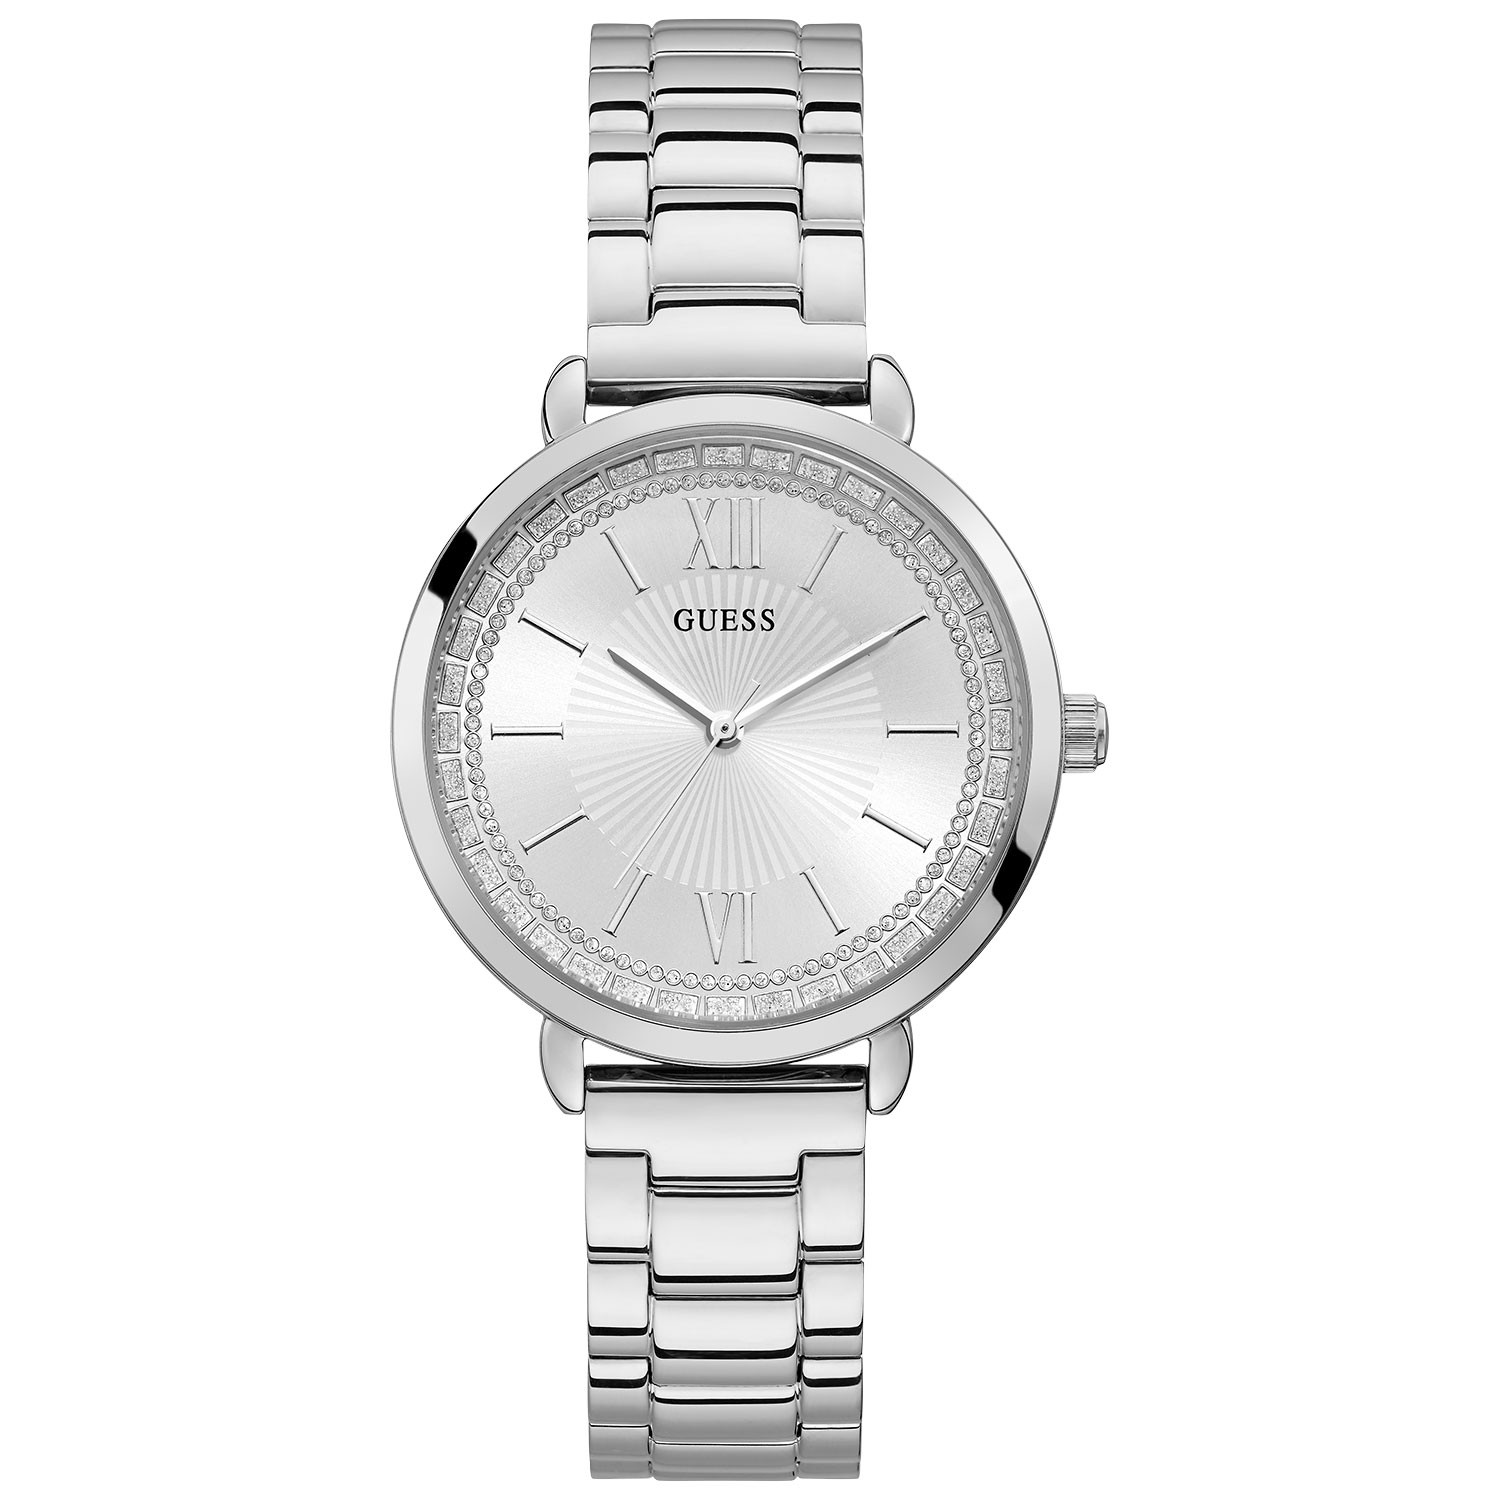 GUESS LADIES WORK LIFE W1231L1-377